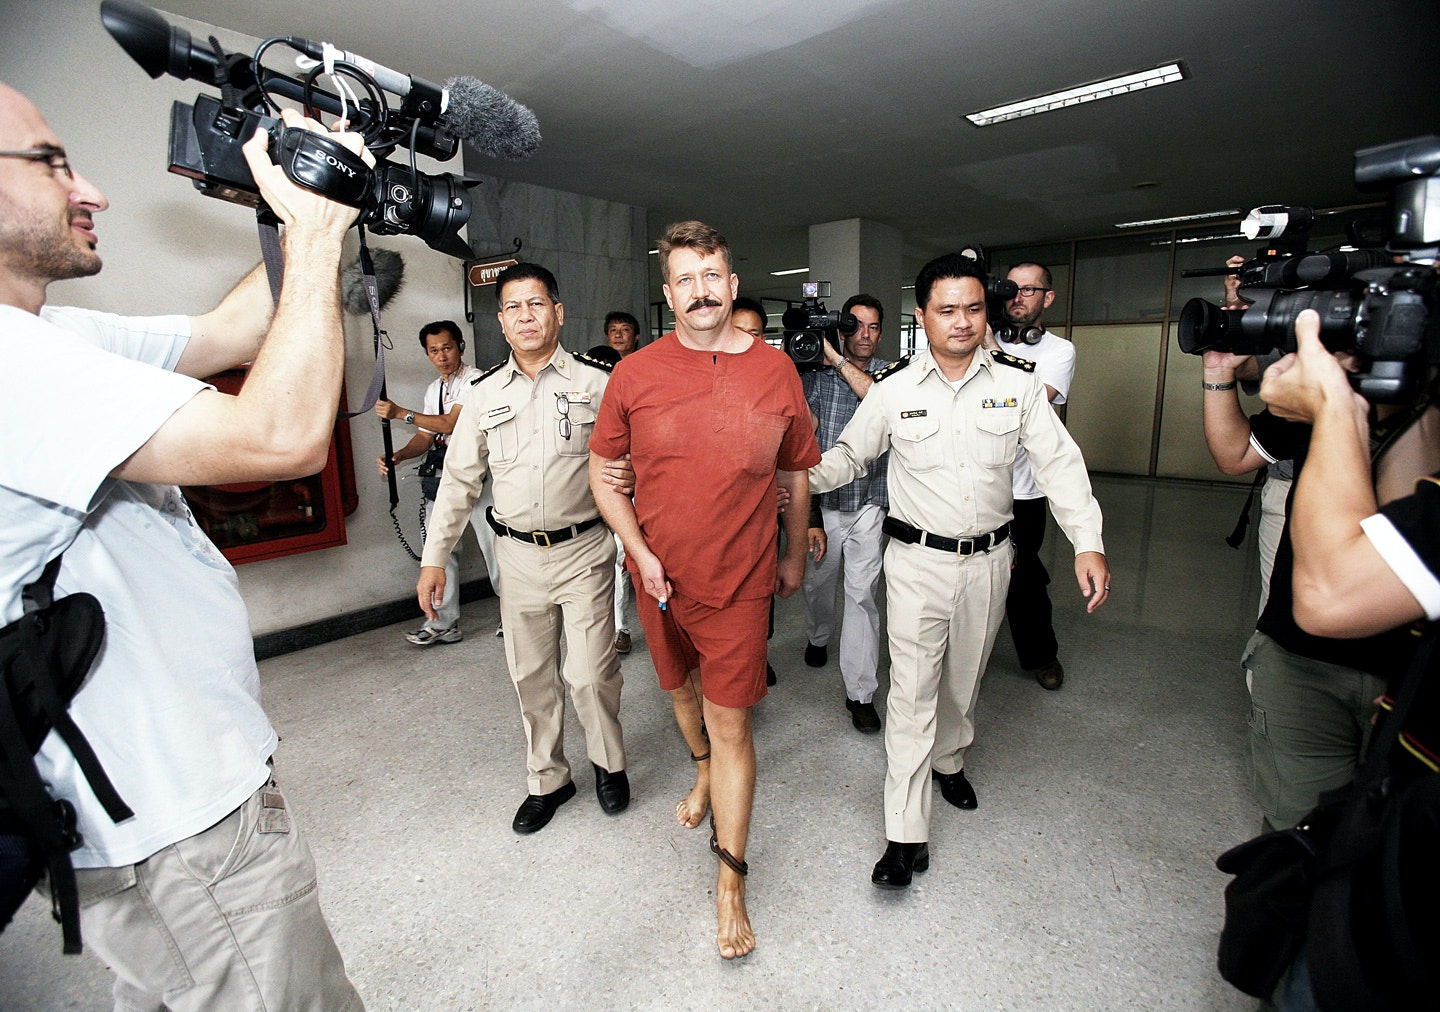 BANGKOK, THAILAND - JULY 28: Arms Dealer Viktor Bout arrive at Bangkok Supreme Court on July 28, 2008, in Bangkok, Thailand. A Thai court delayed reputed Russian arms smuggler Viktor Bout's extradition hearing to the U.S. for a second time after his new defense attorney failed to show up for the high-profile case Monday.  (Photo by Chumsak Kanoknan/ Getty Images)